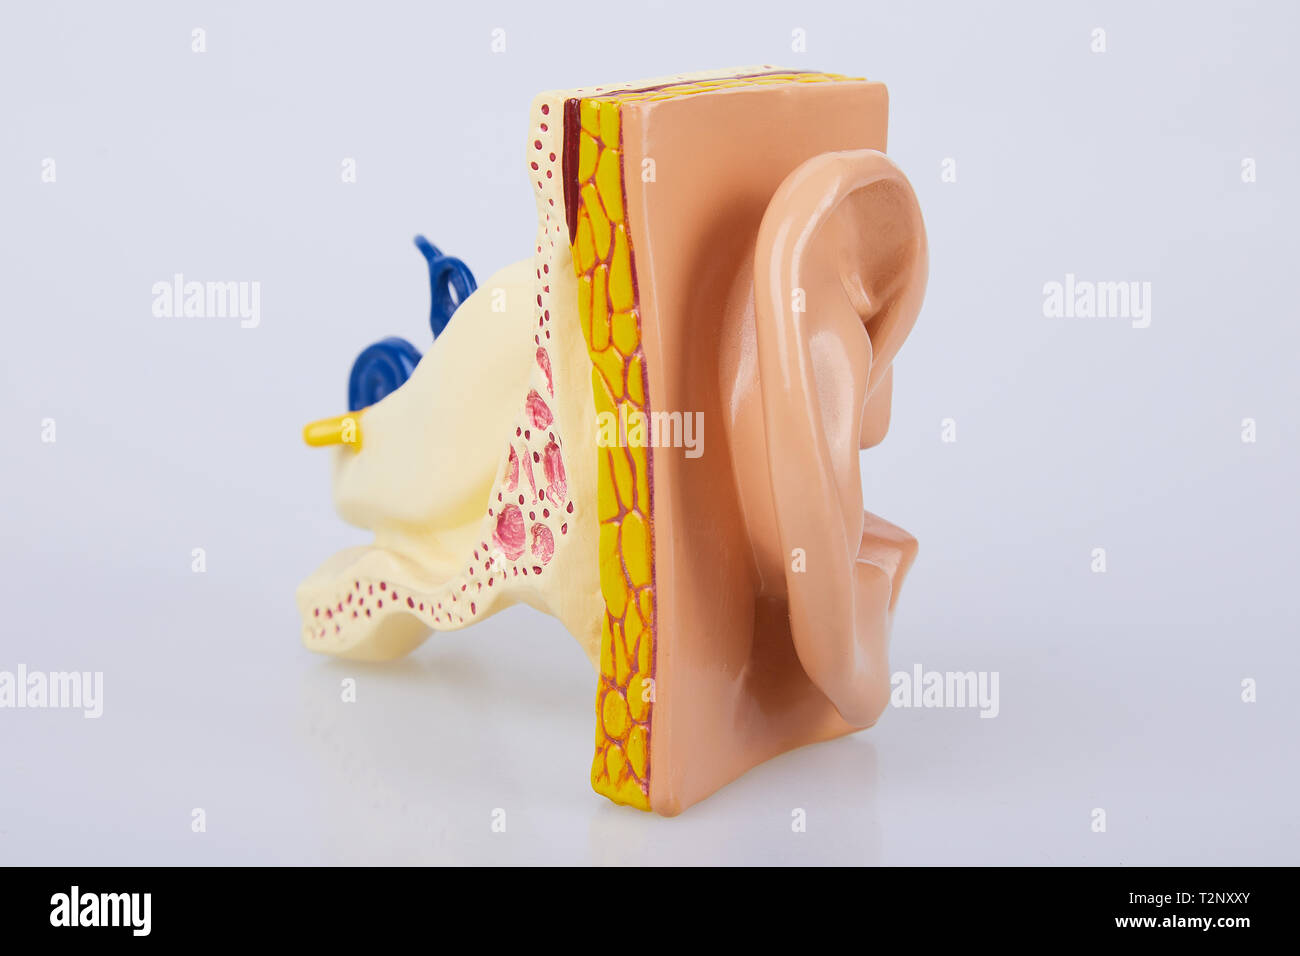 Artificial human ear model isolated on white background. Human ear. Ear model. A model of the ear for elementary science classes. - Stock Image